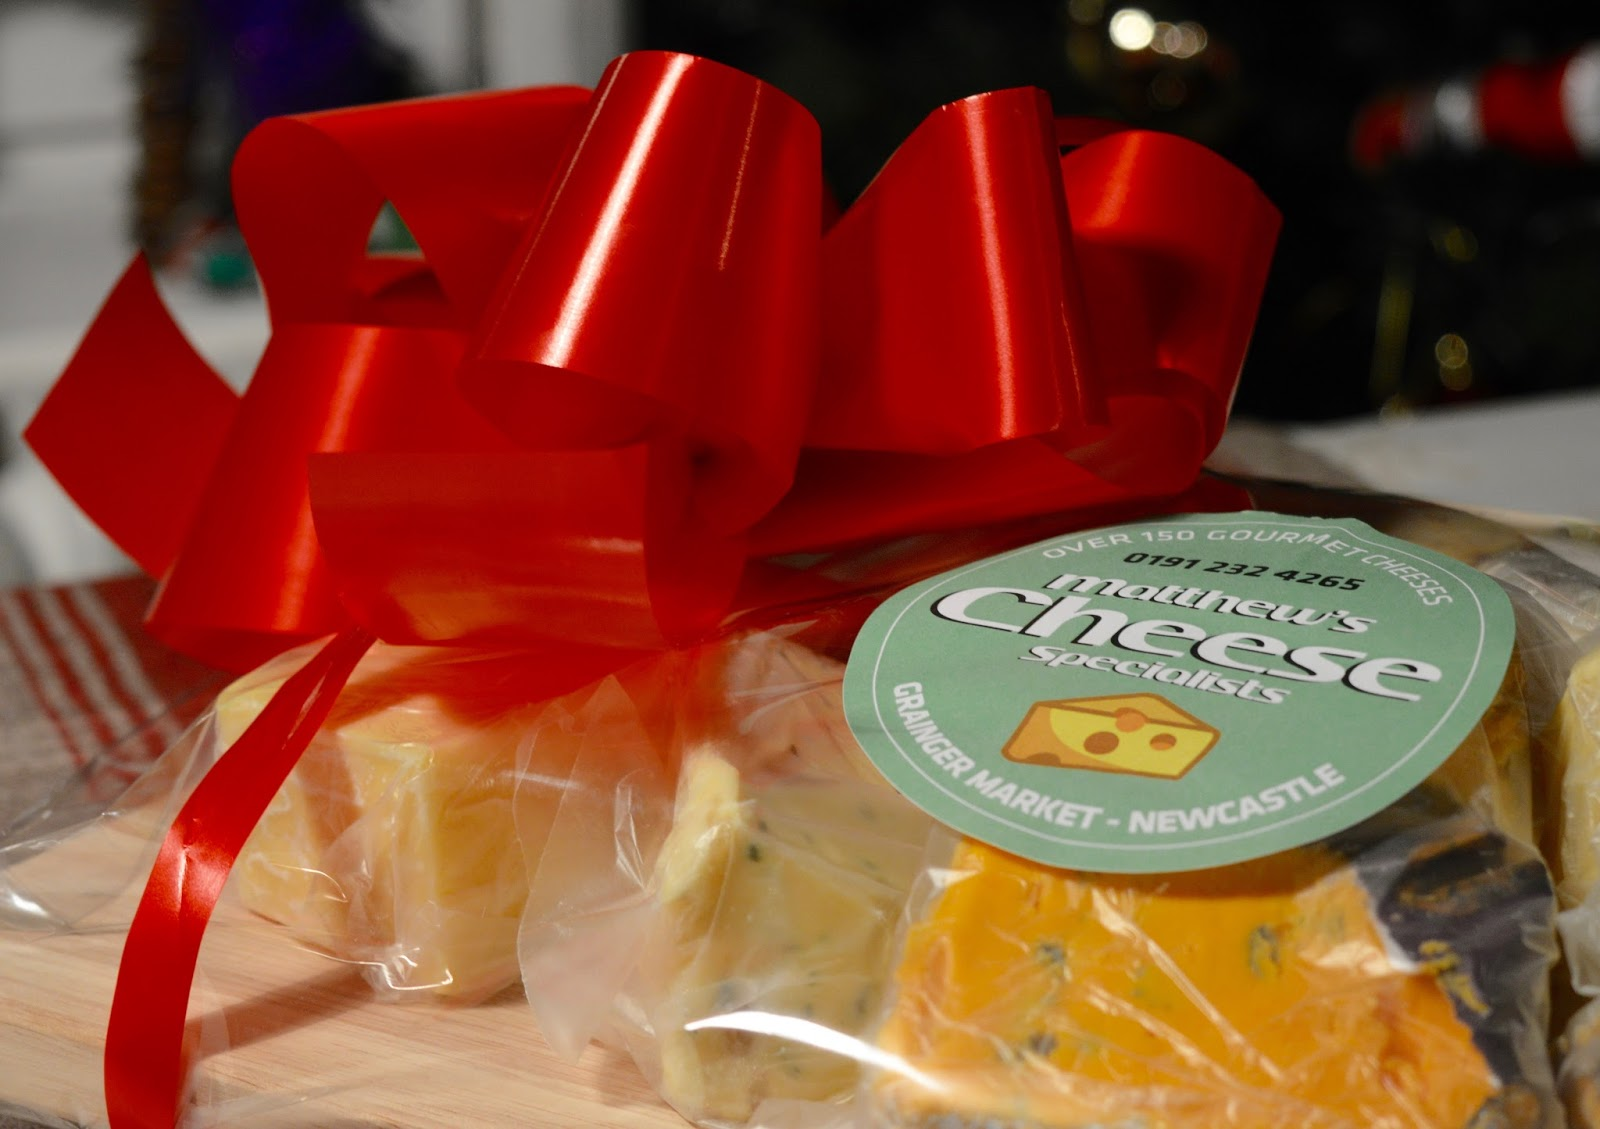 Creating a perfect Cheese Board with Matthew's Cheese Shop | The Grainger Market, Newcastle - wrapped cheese board gift